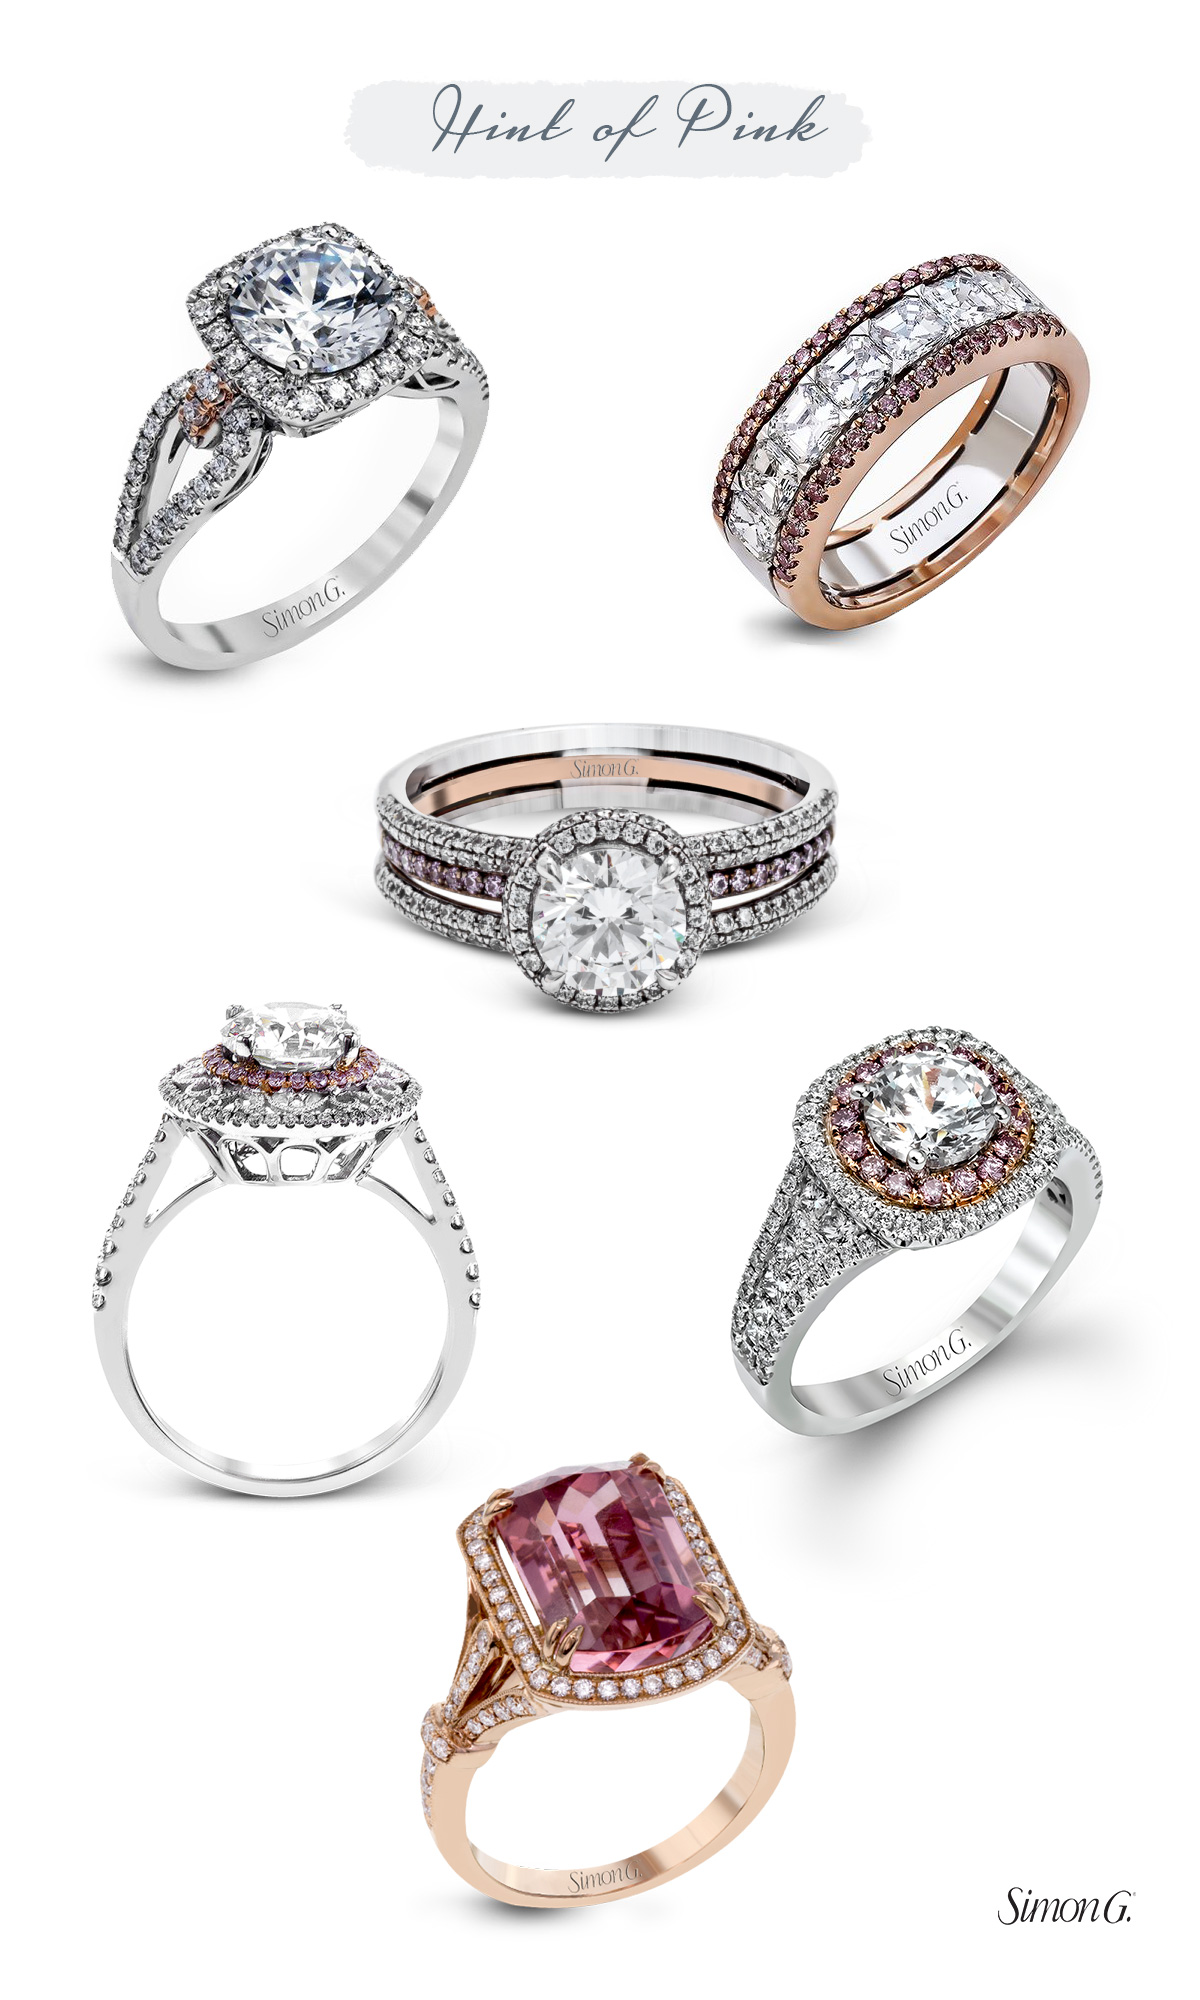 simon g jewelry 2017 trends engagement rings rose gold white gold rose gold pink diamonds halo watermelon tourmaline